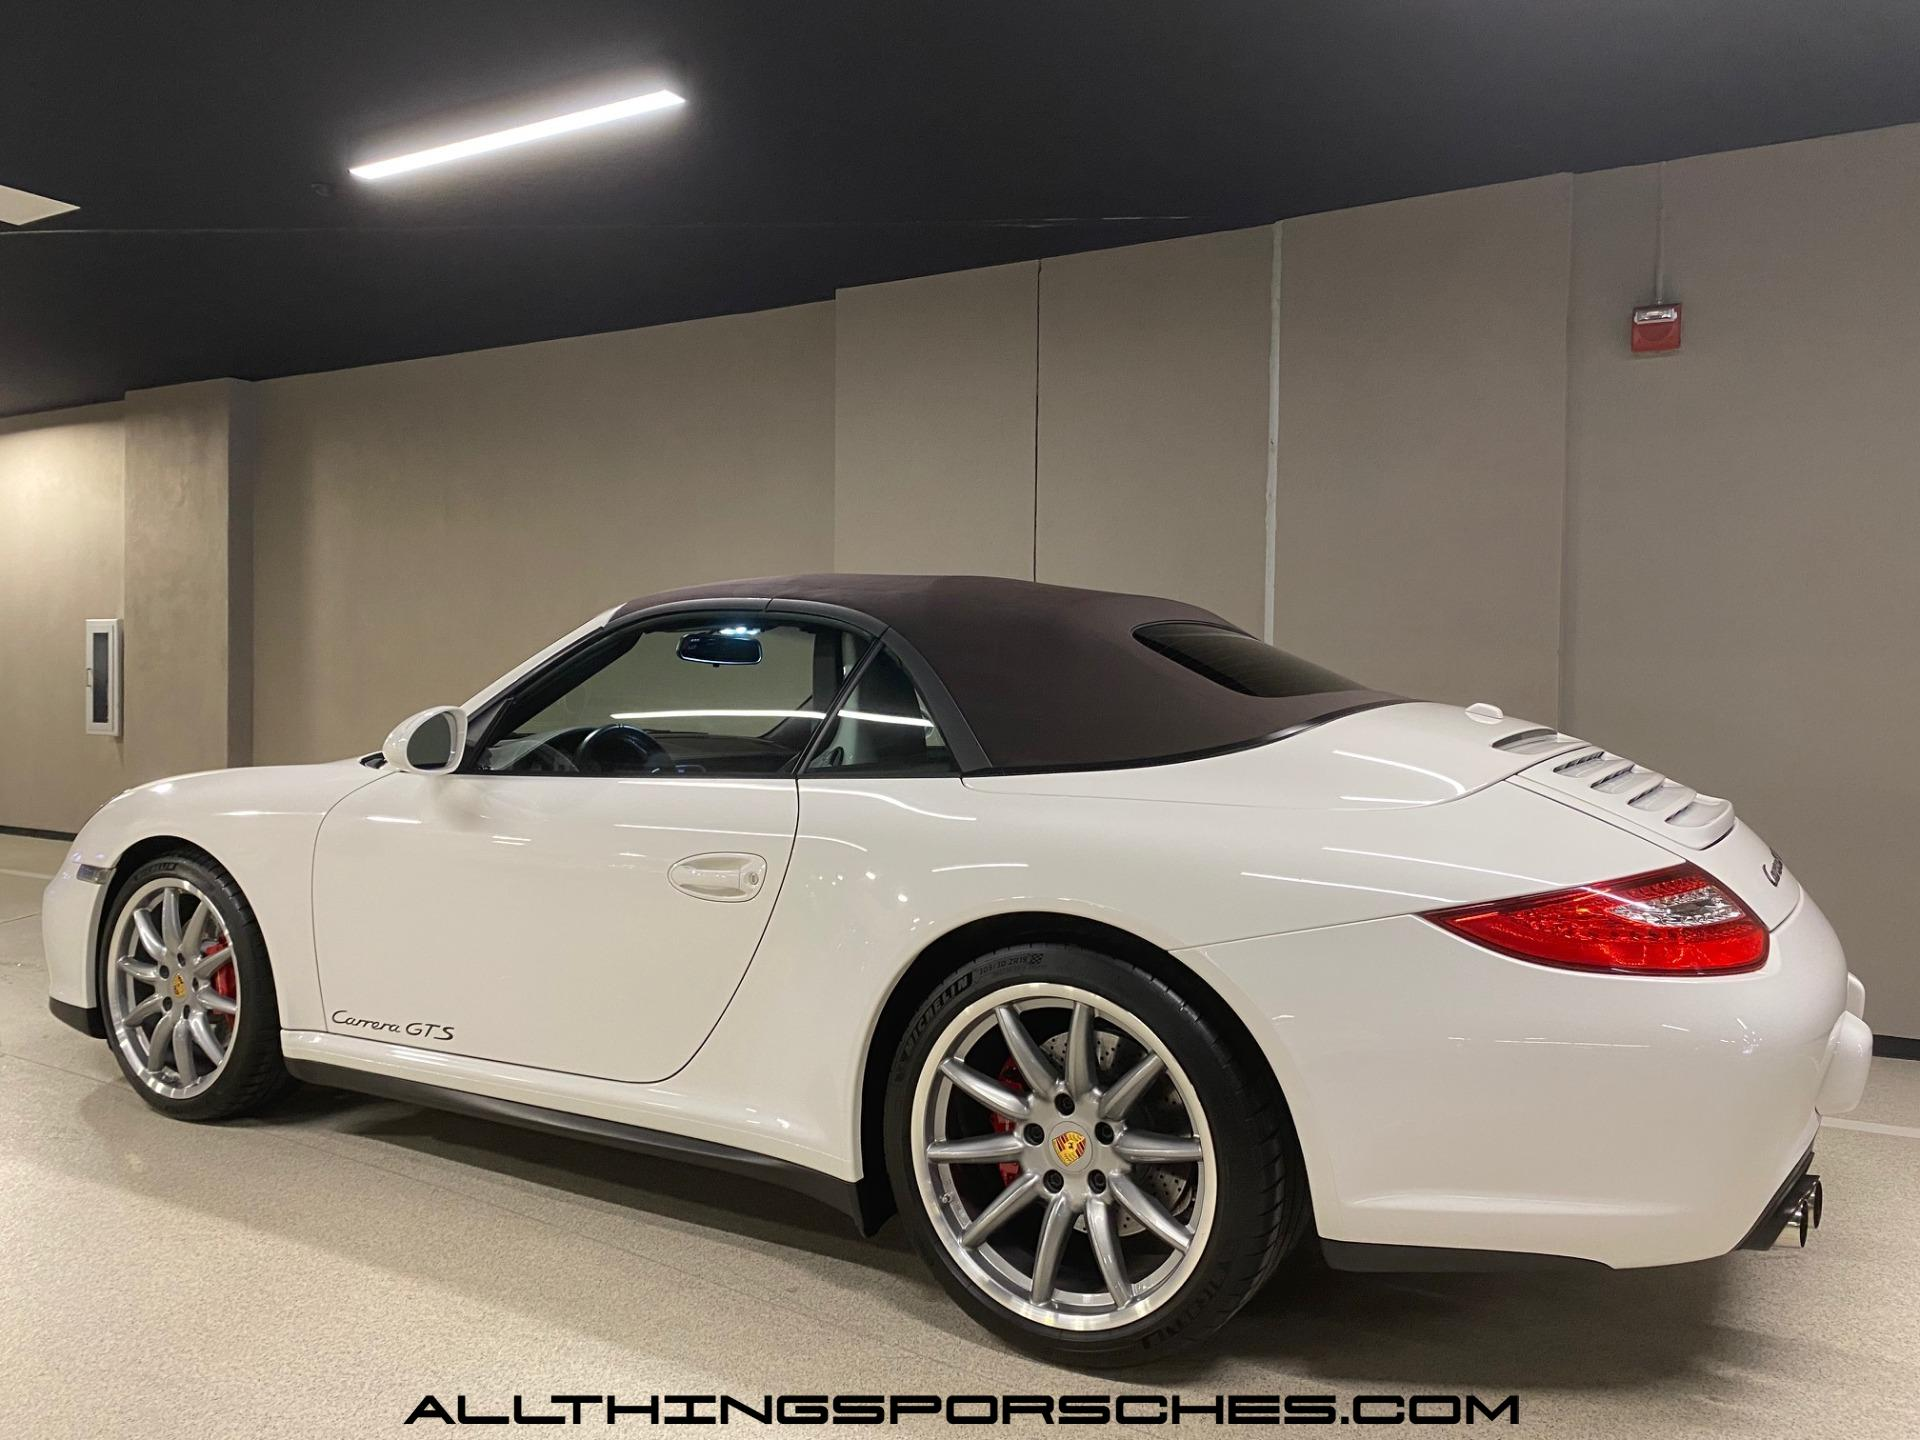 Used-2012-Porsche-911-Carrera-GTS